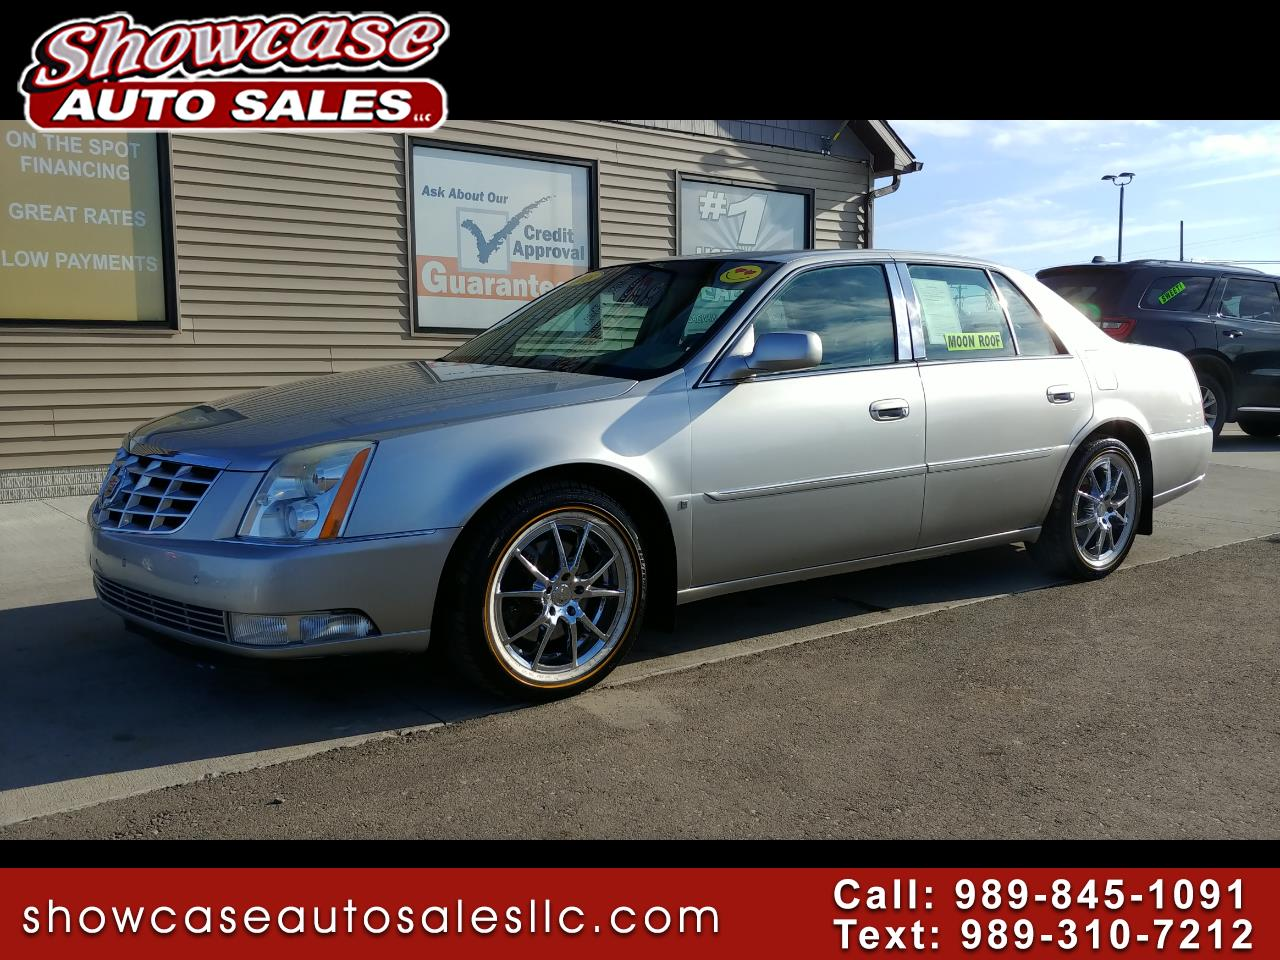 2008 Cadillac DTS 4dr Sdn w/1SD